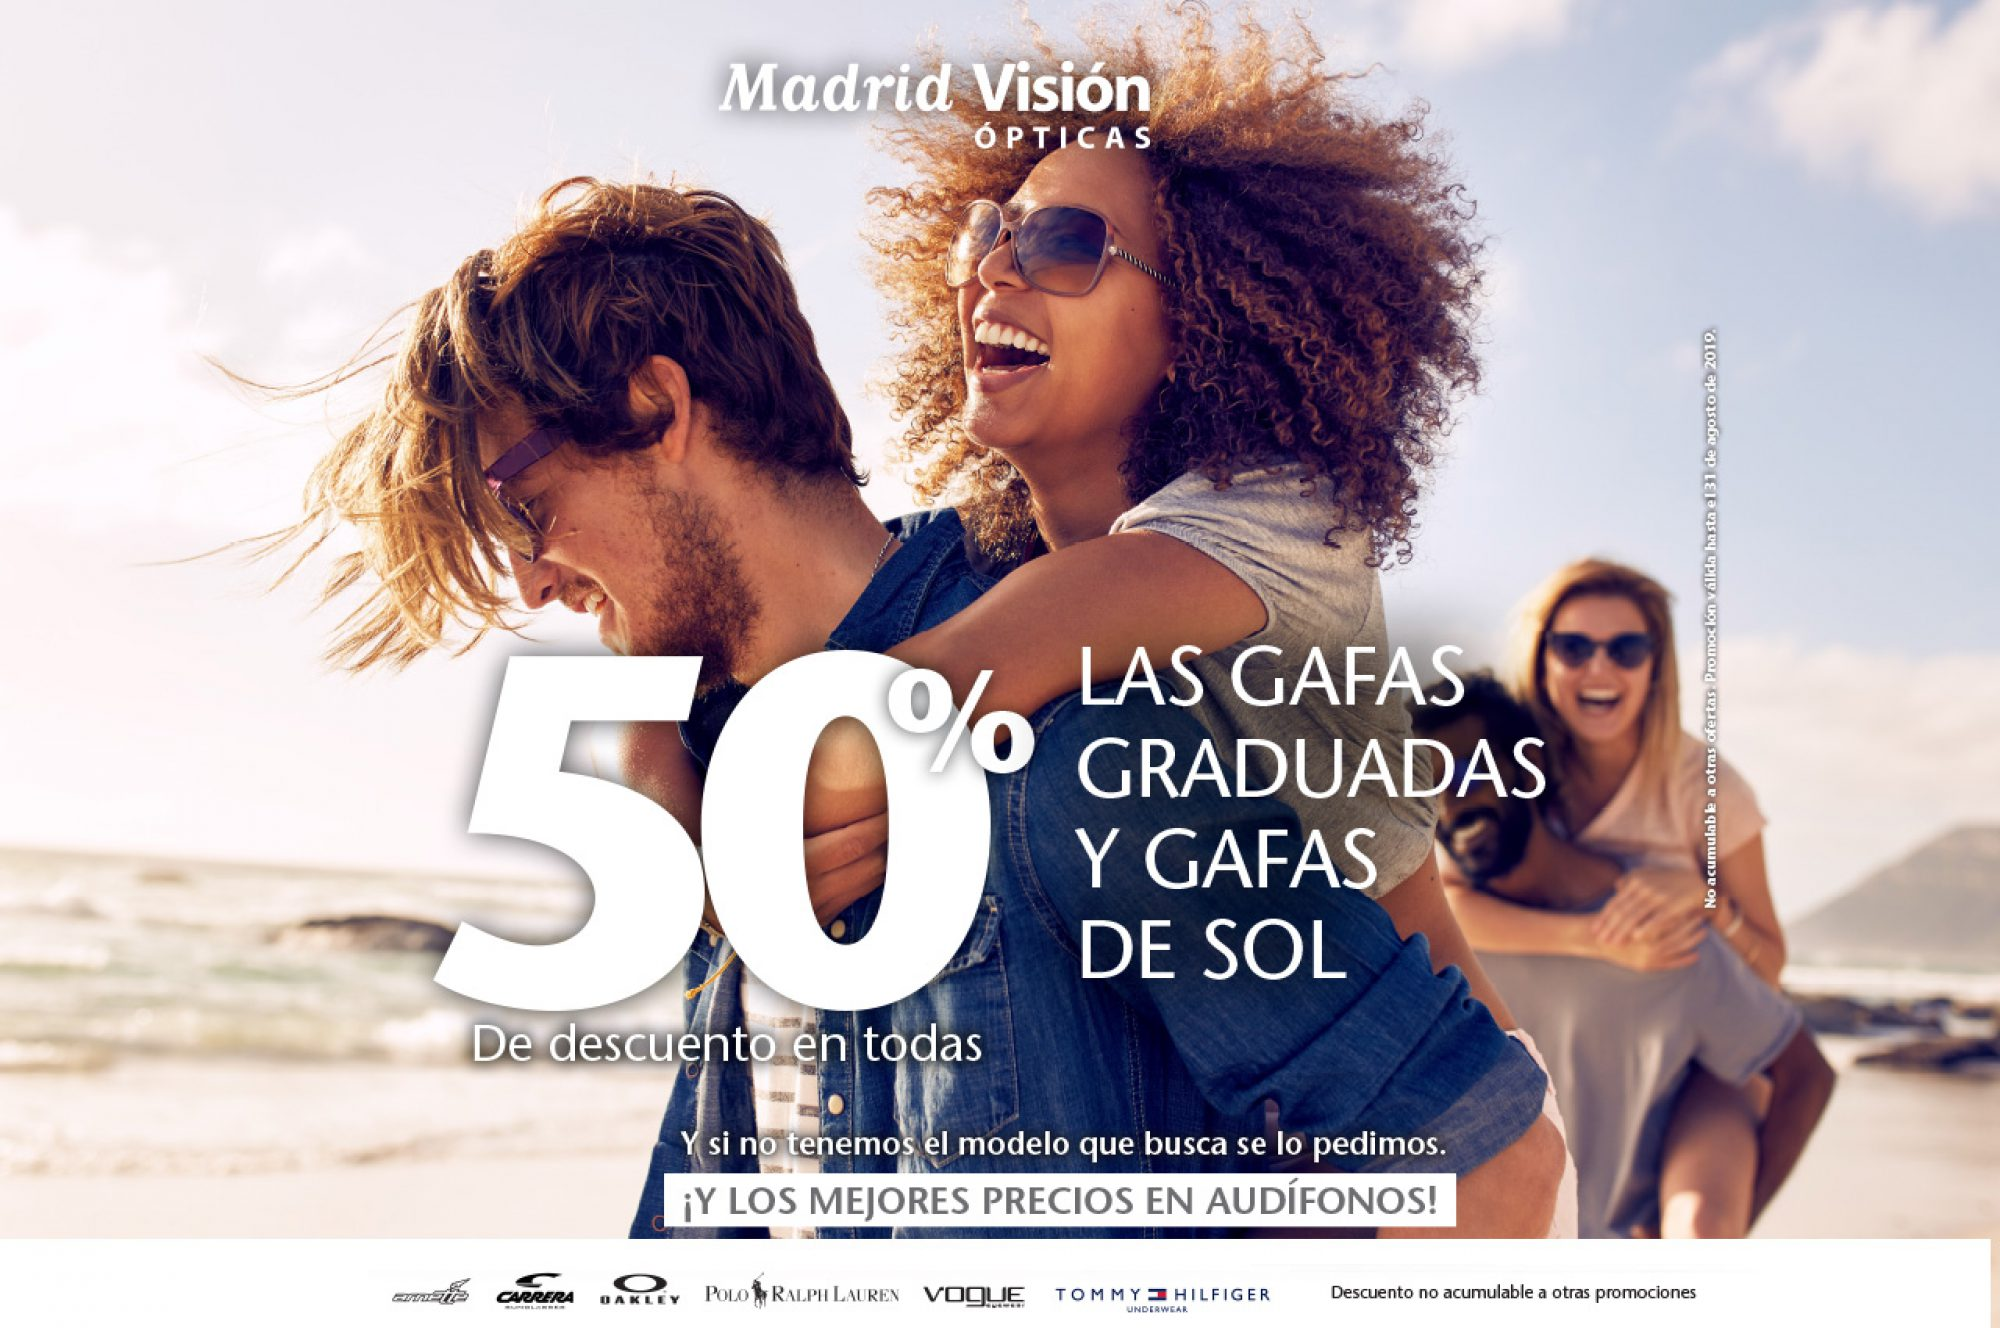 MADRID VISION OPTICAS